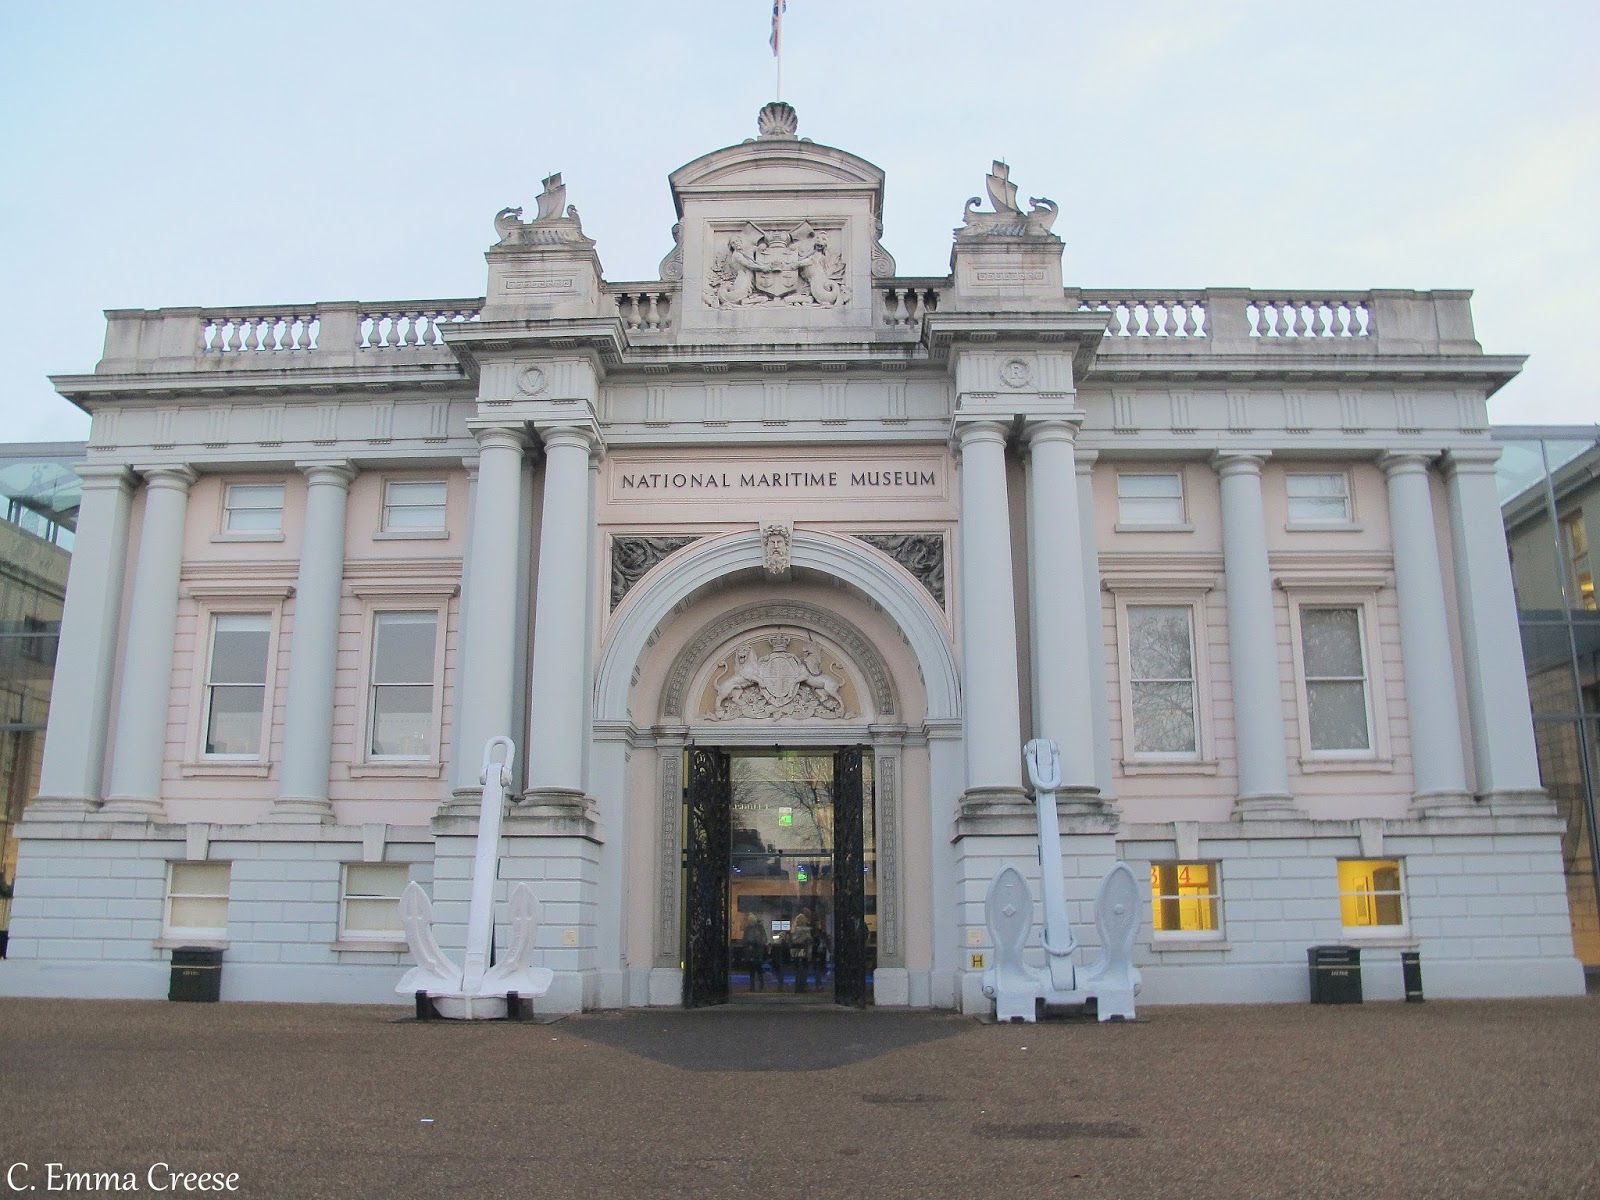 Visiting the National Maritime Museum: The Emma, Lady Hamilton – Seduction and Celebrity Exhibition